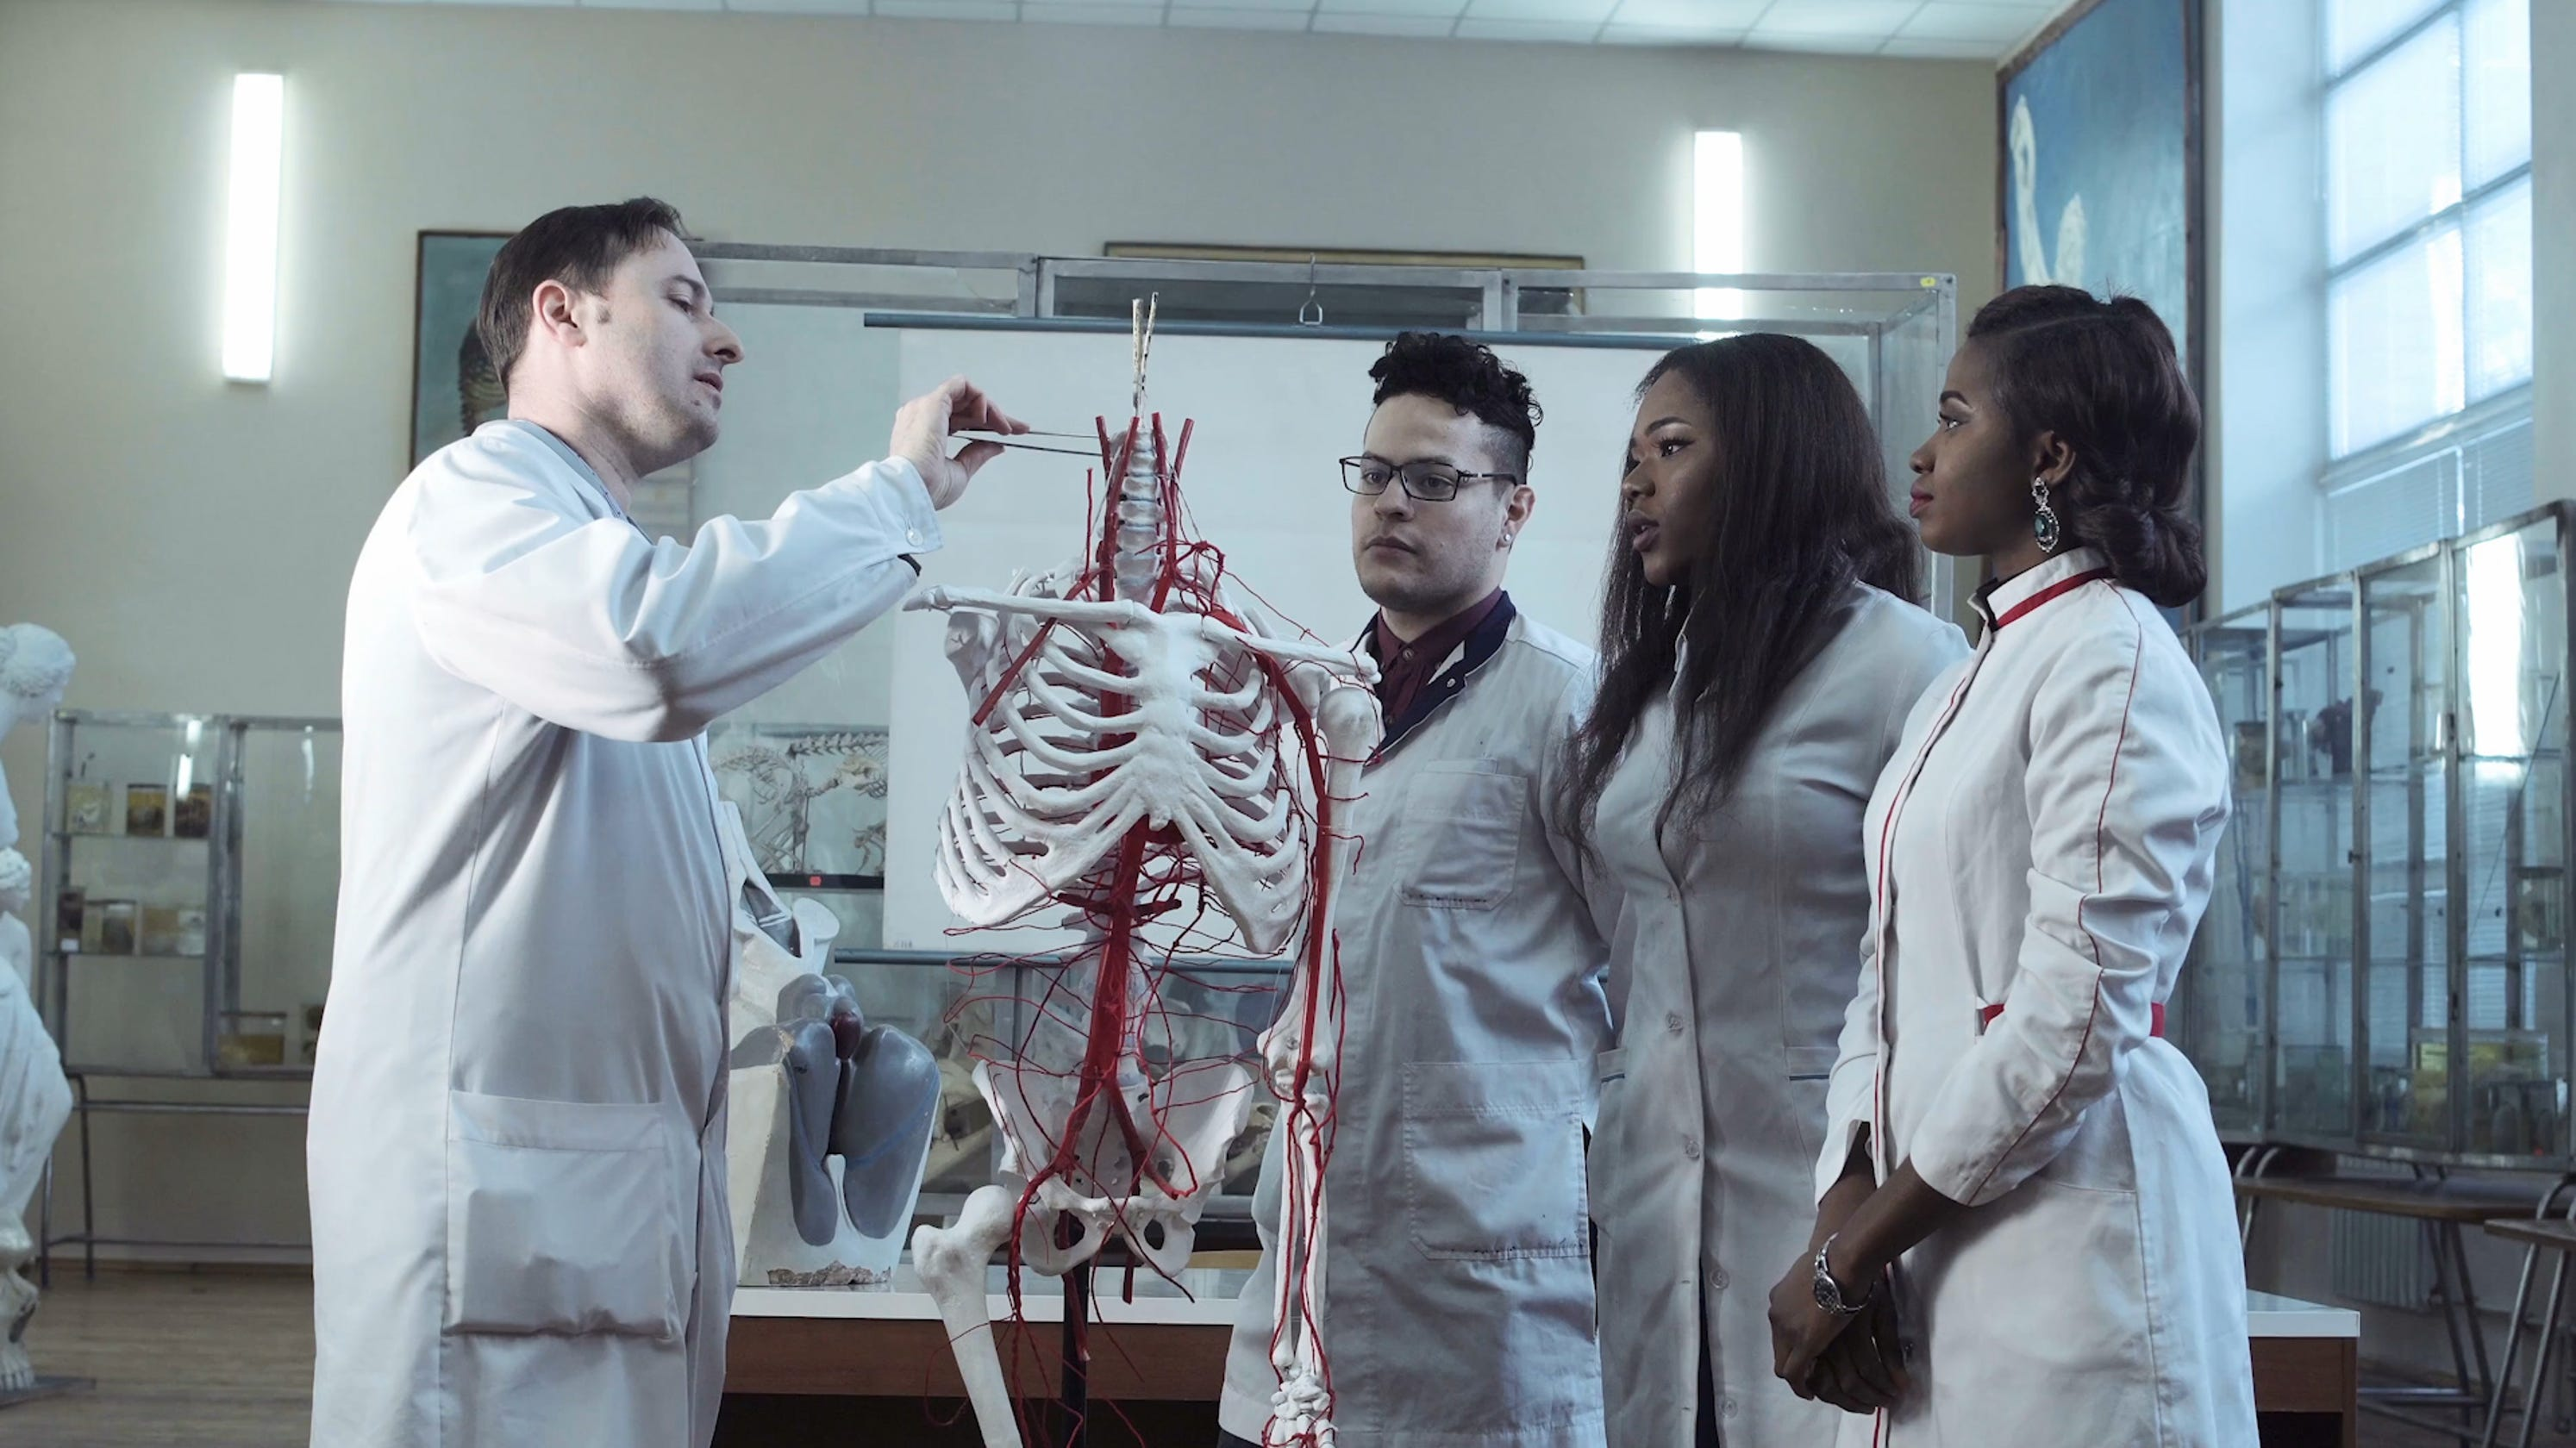 NYU medical school tuition decision: A boon to primary care